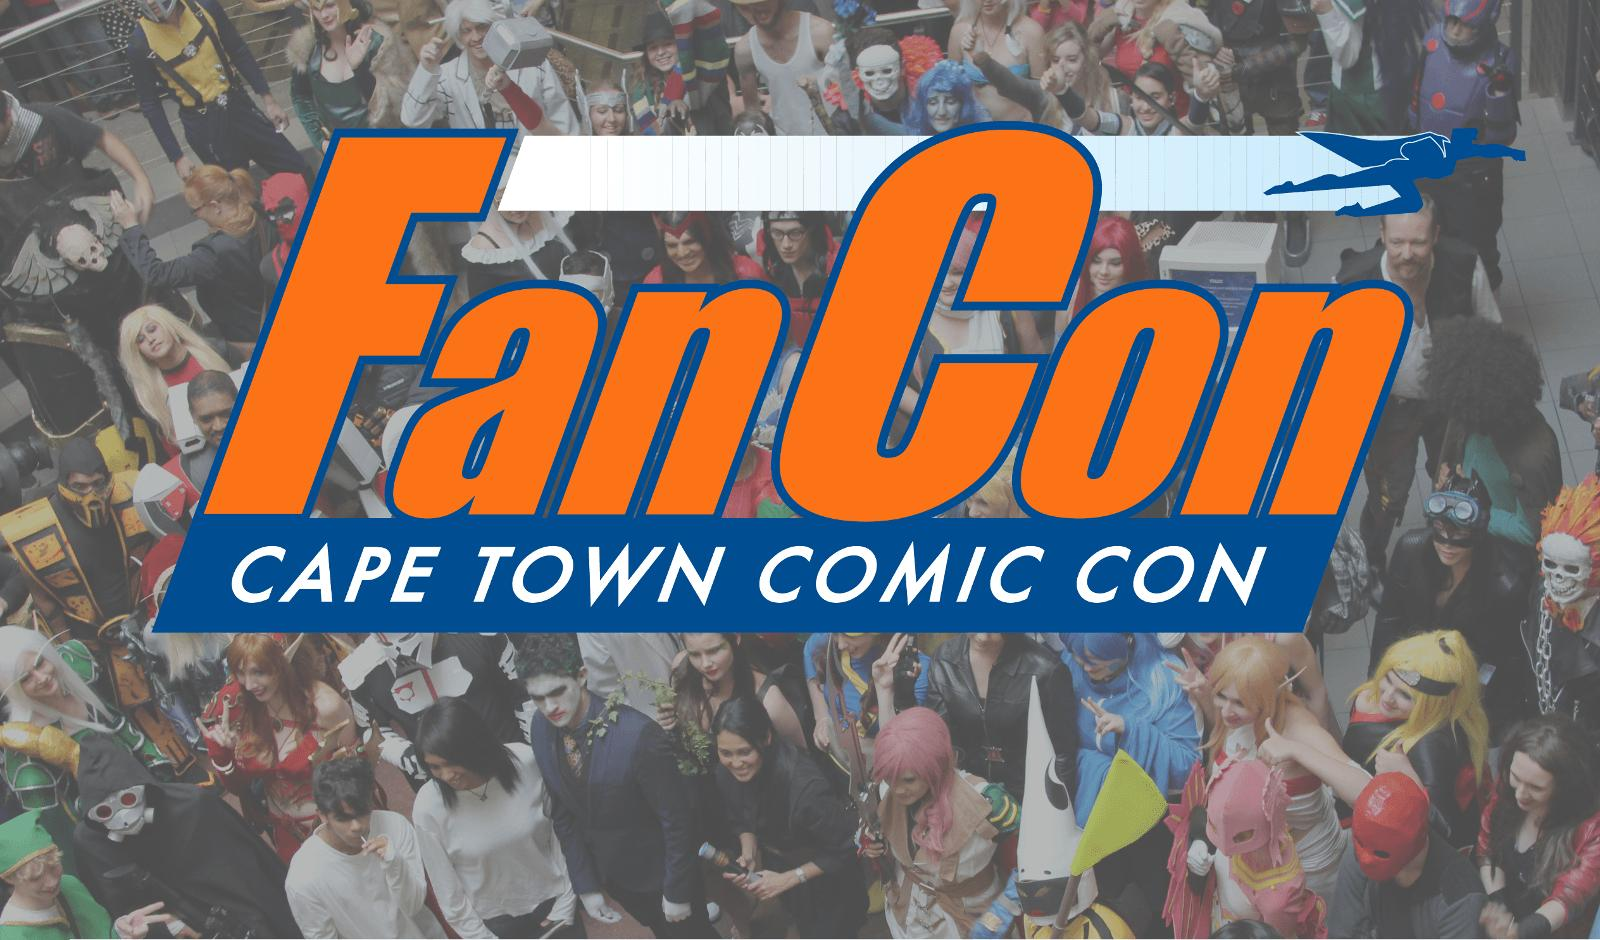 Win A Full 3 Day Pass To FanCon Cape Town Comic Con This Weekend